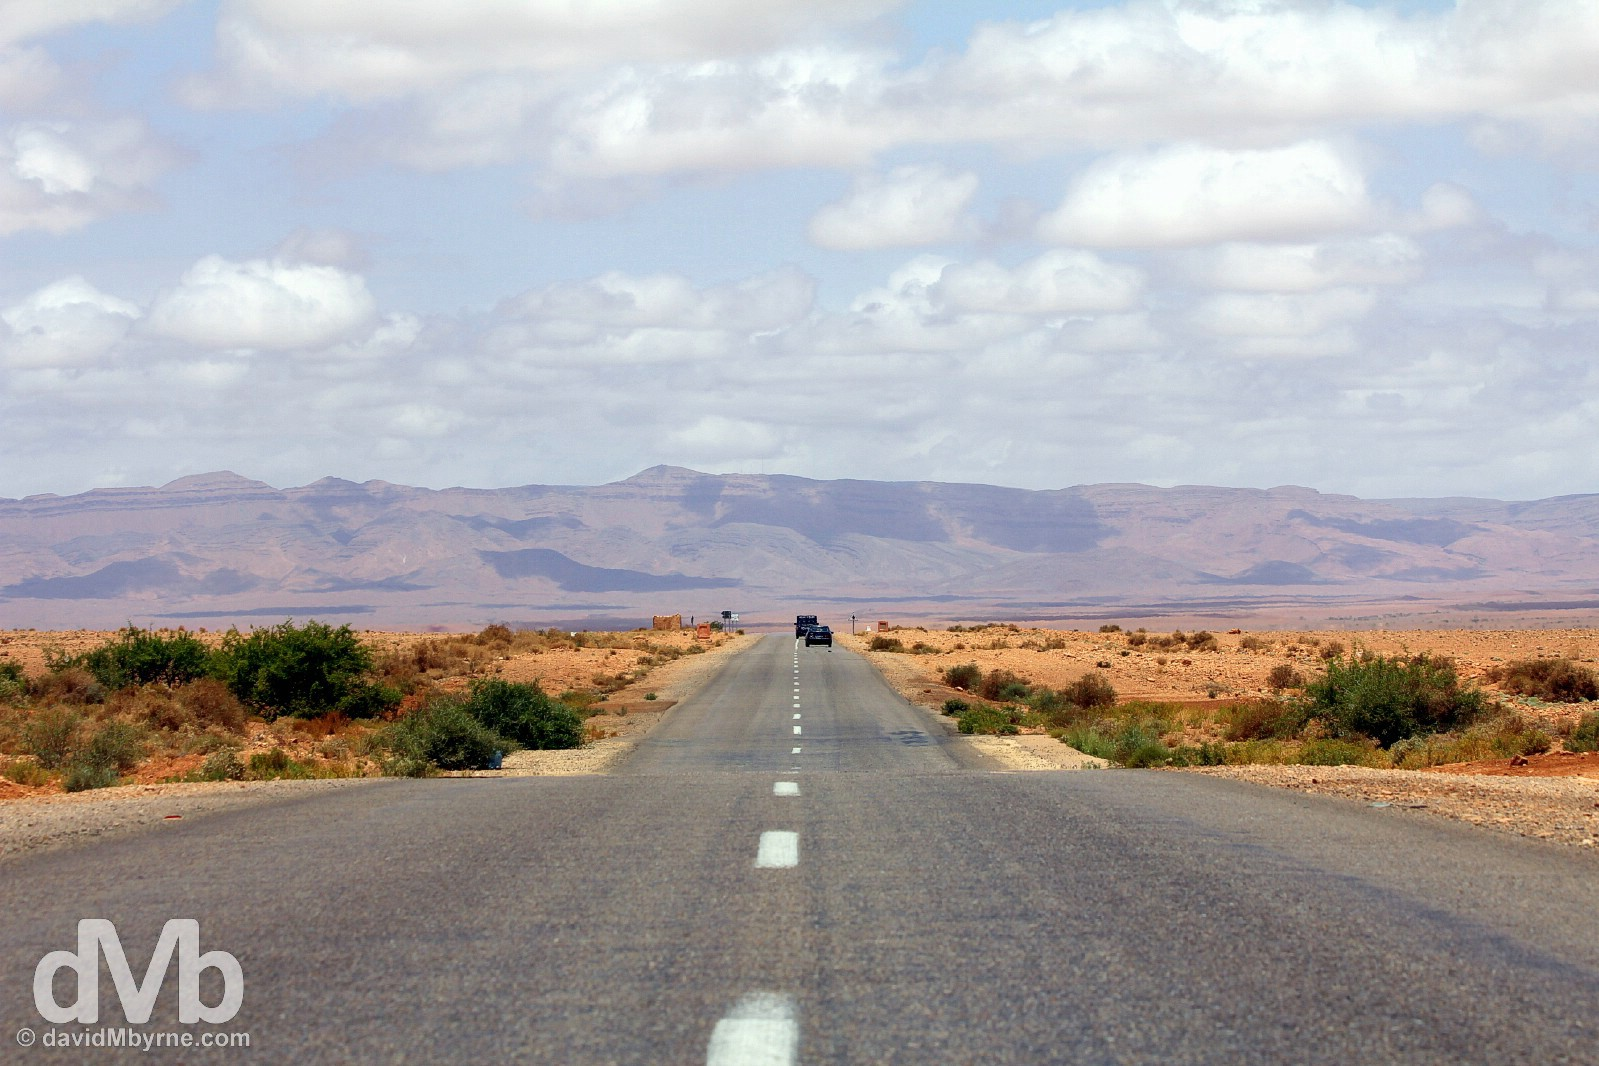 Road trip. The N13 between Er Rachidia and Merzouga, southeastern Morocco. May 19, 2014.